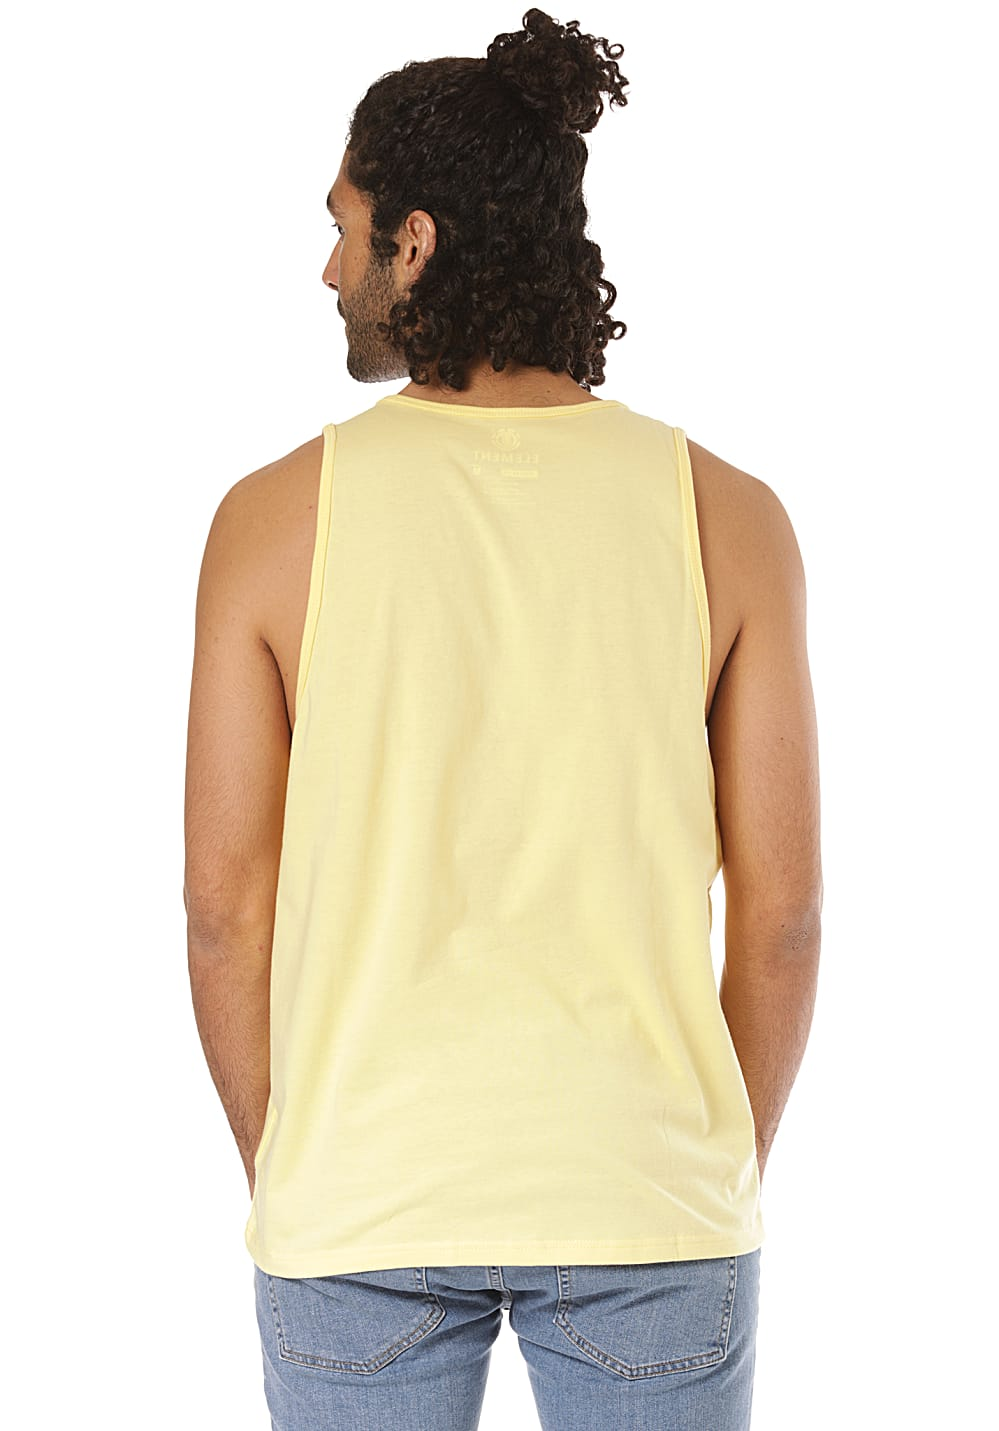 379aaf302a3861 ... Element Joint Tank - Top for Men - Yellow. Back to Overview. 1  2  3.  Previous. Next